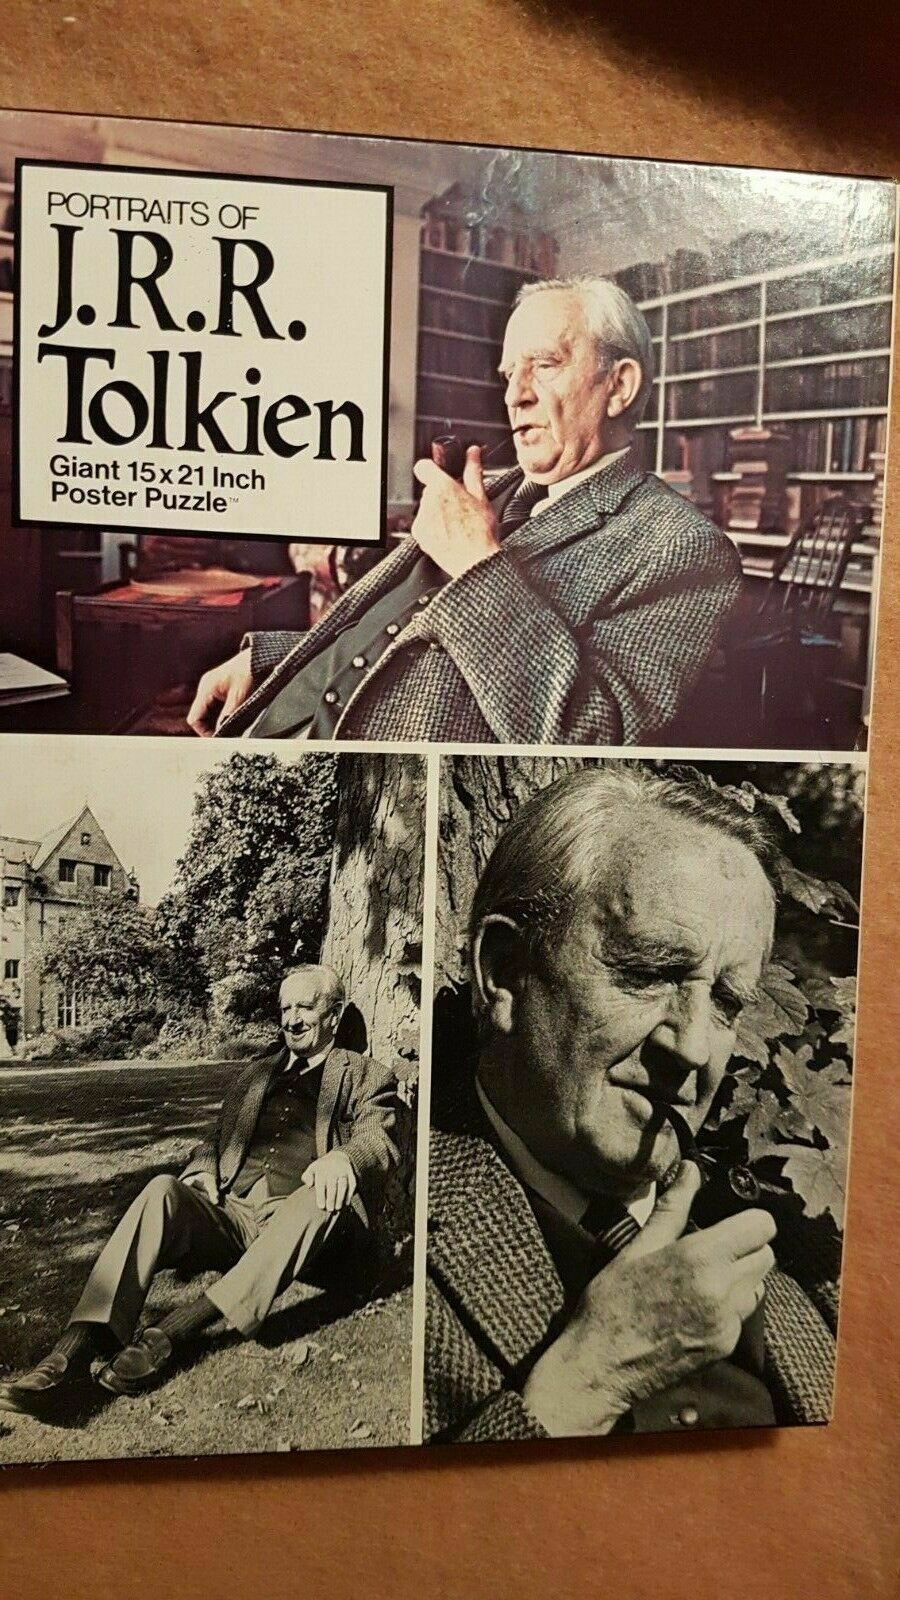 Lord of the Rings Portraits of J.R.R. Tolkien Poster Puzzle 15x21 Vintage 1977